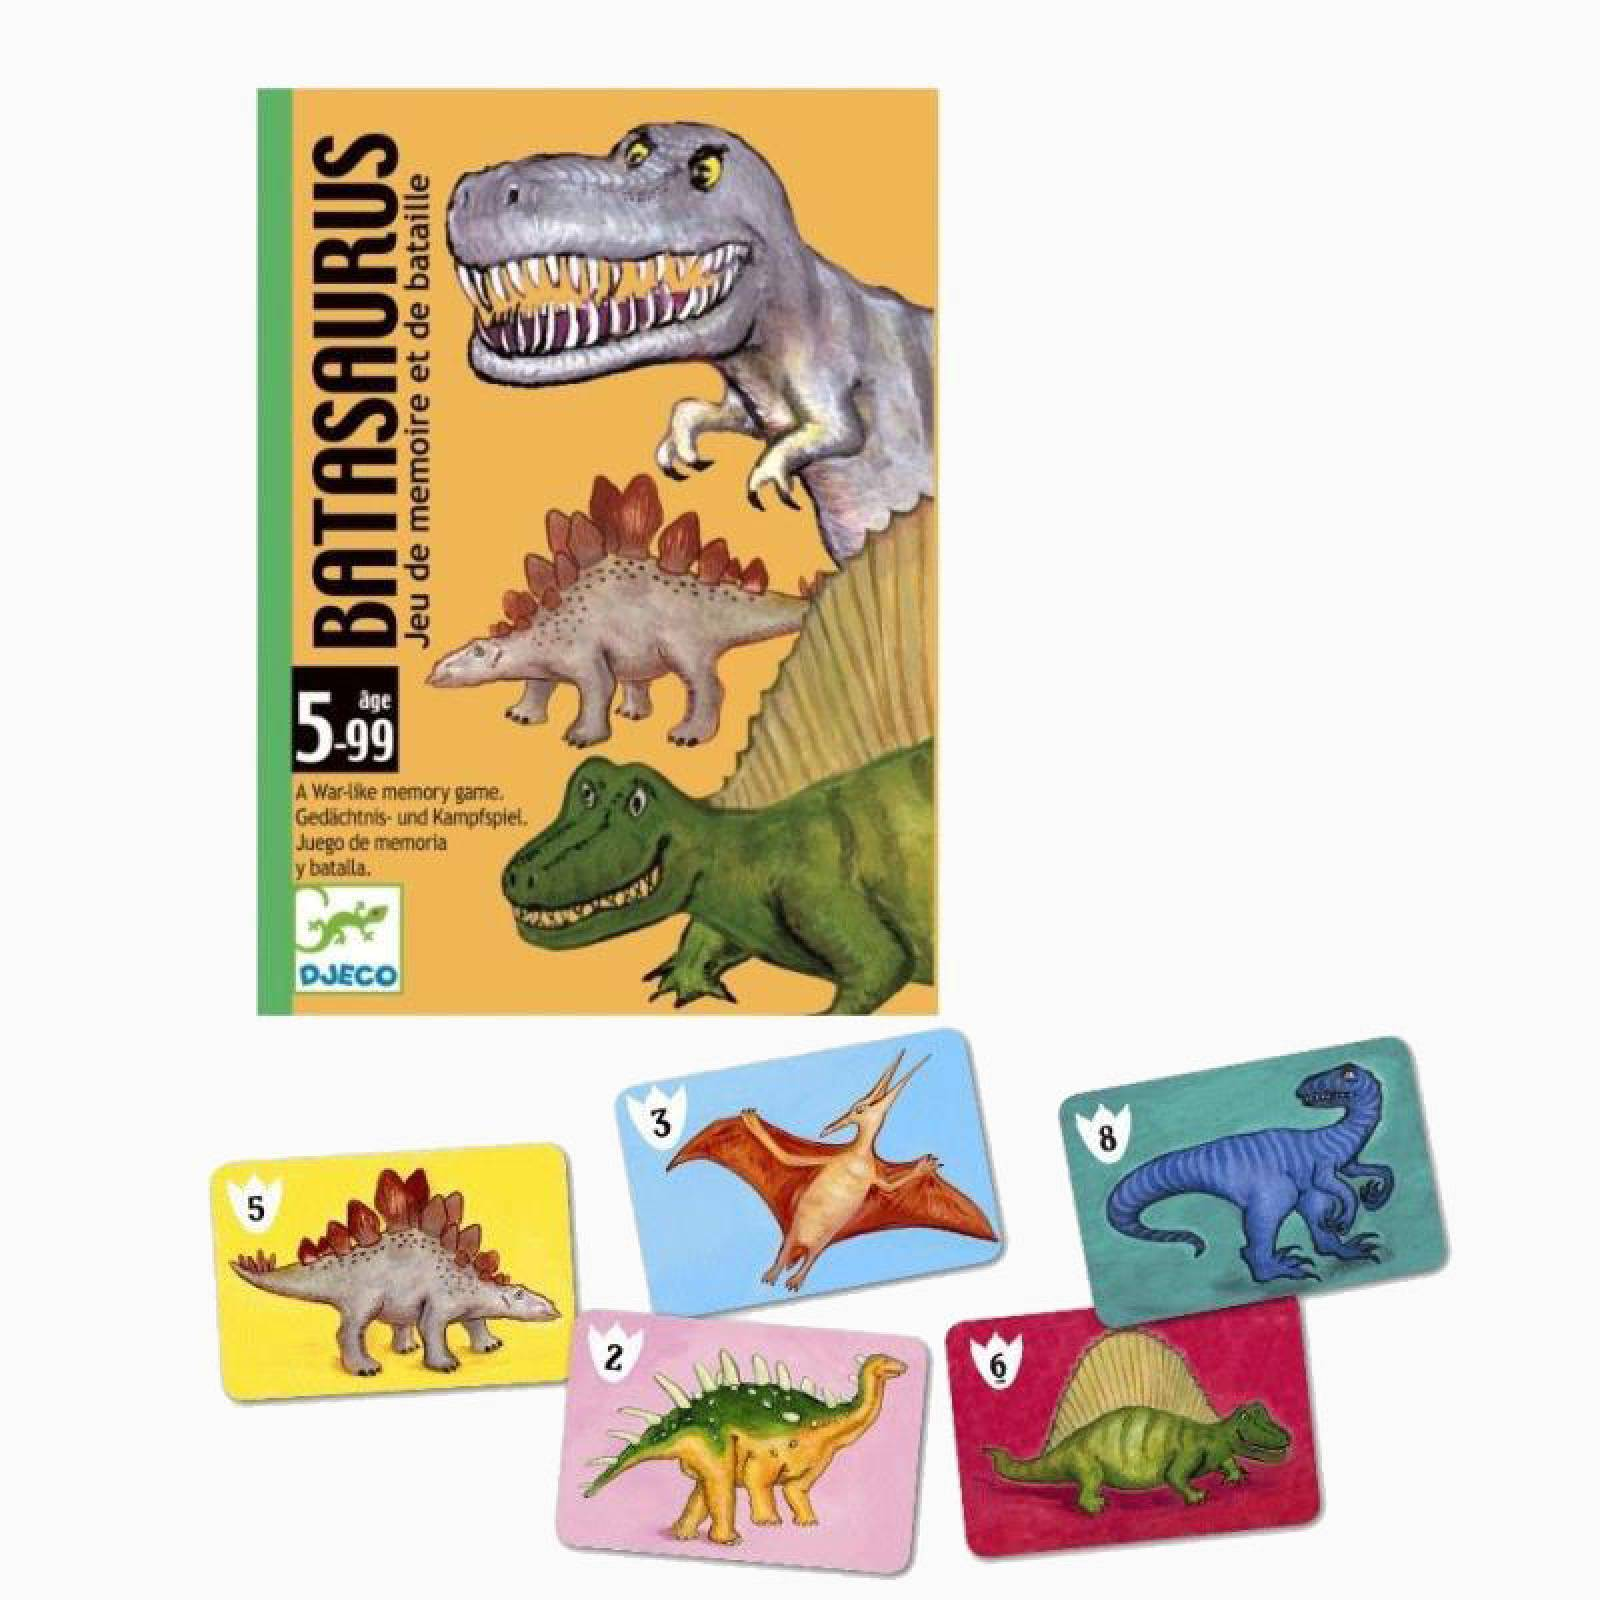 Batasaurus Card Game By Djeco 5+ thumbnails